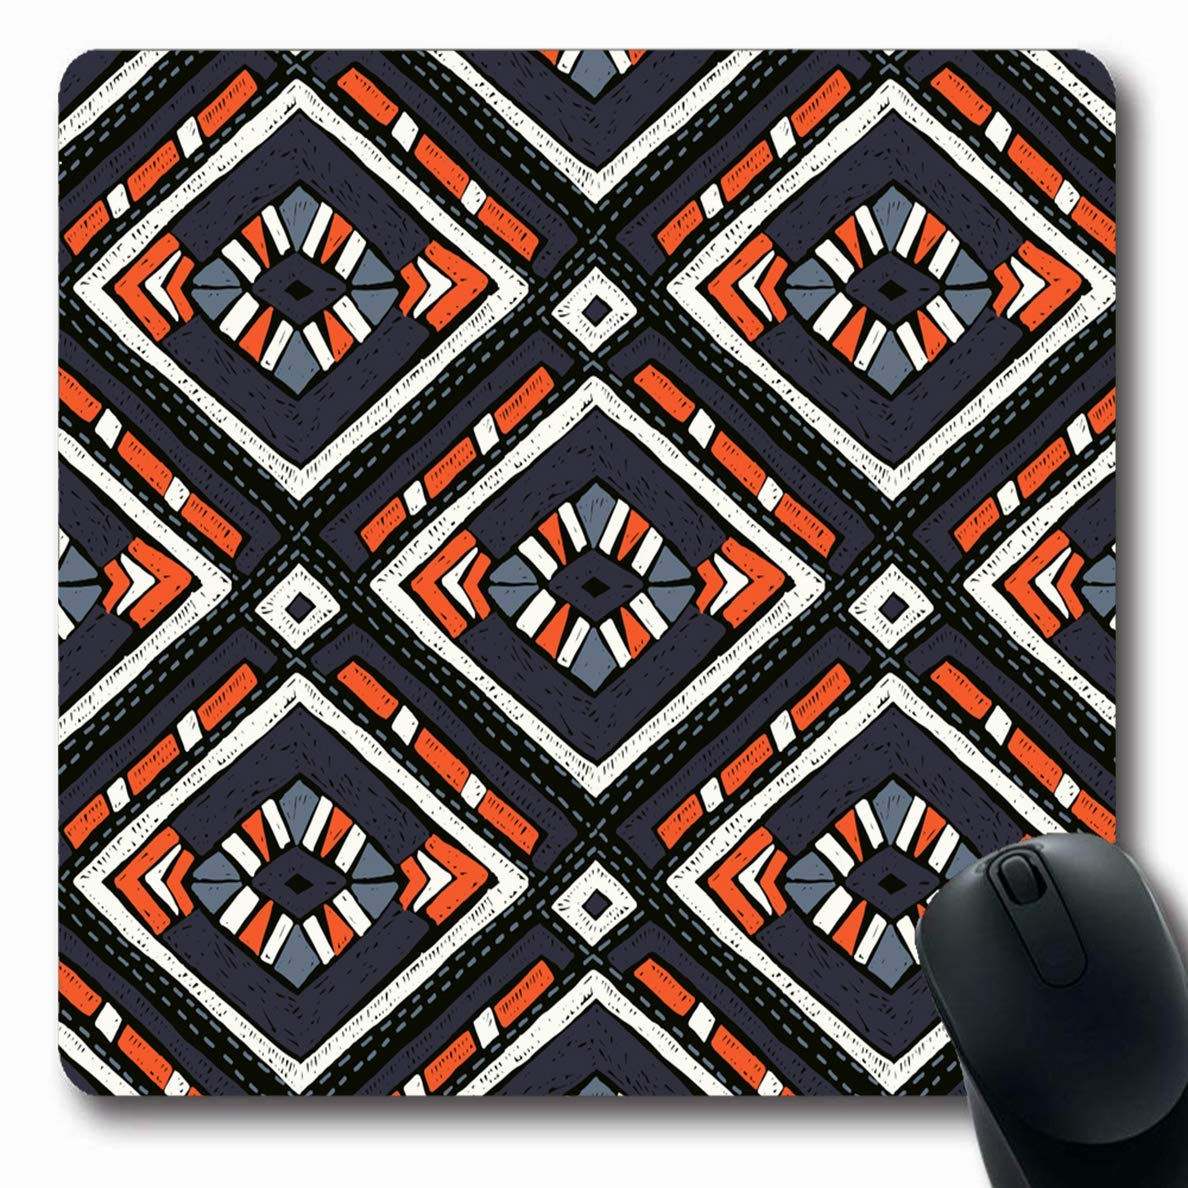 African American Applique Patterns Appliq Patterns